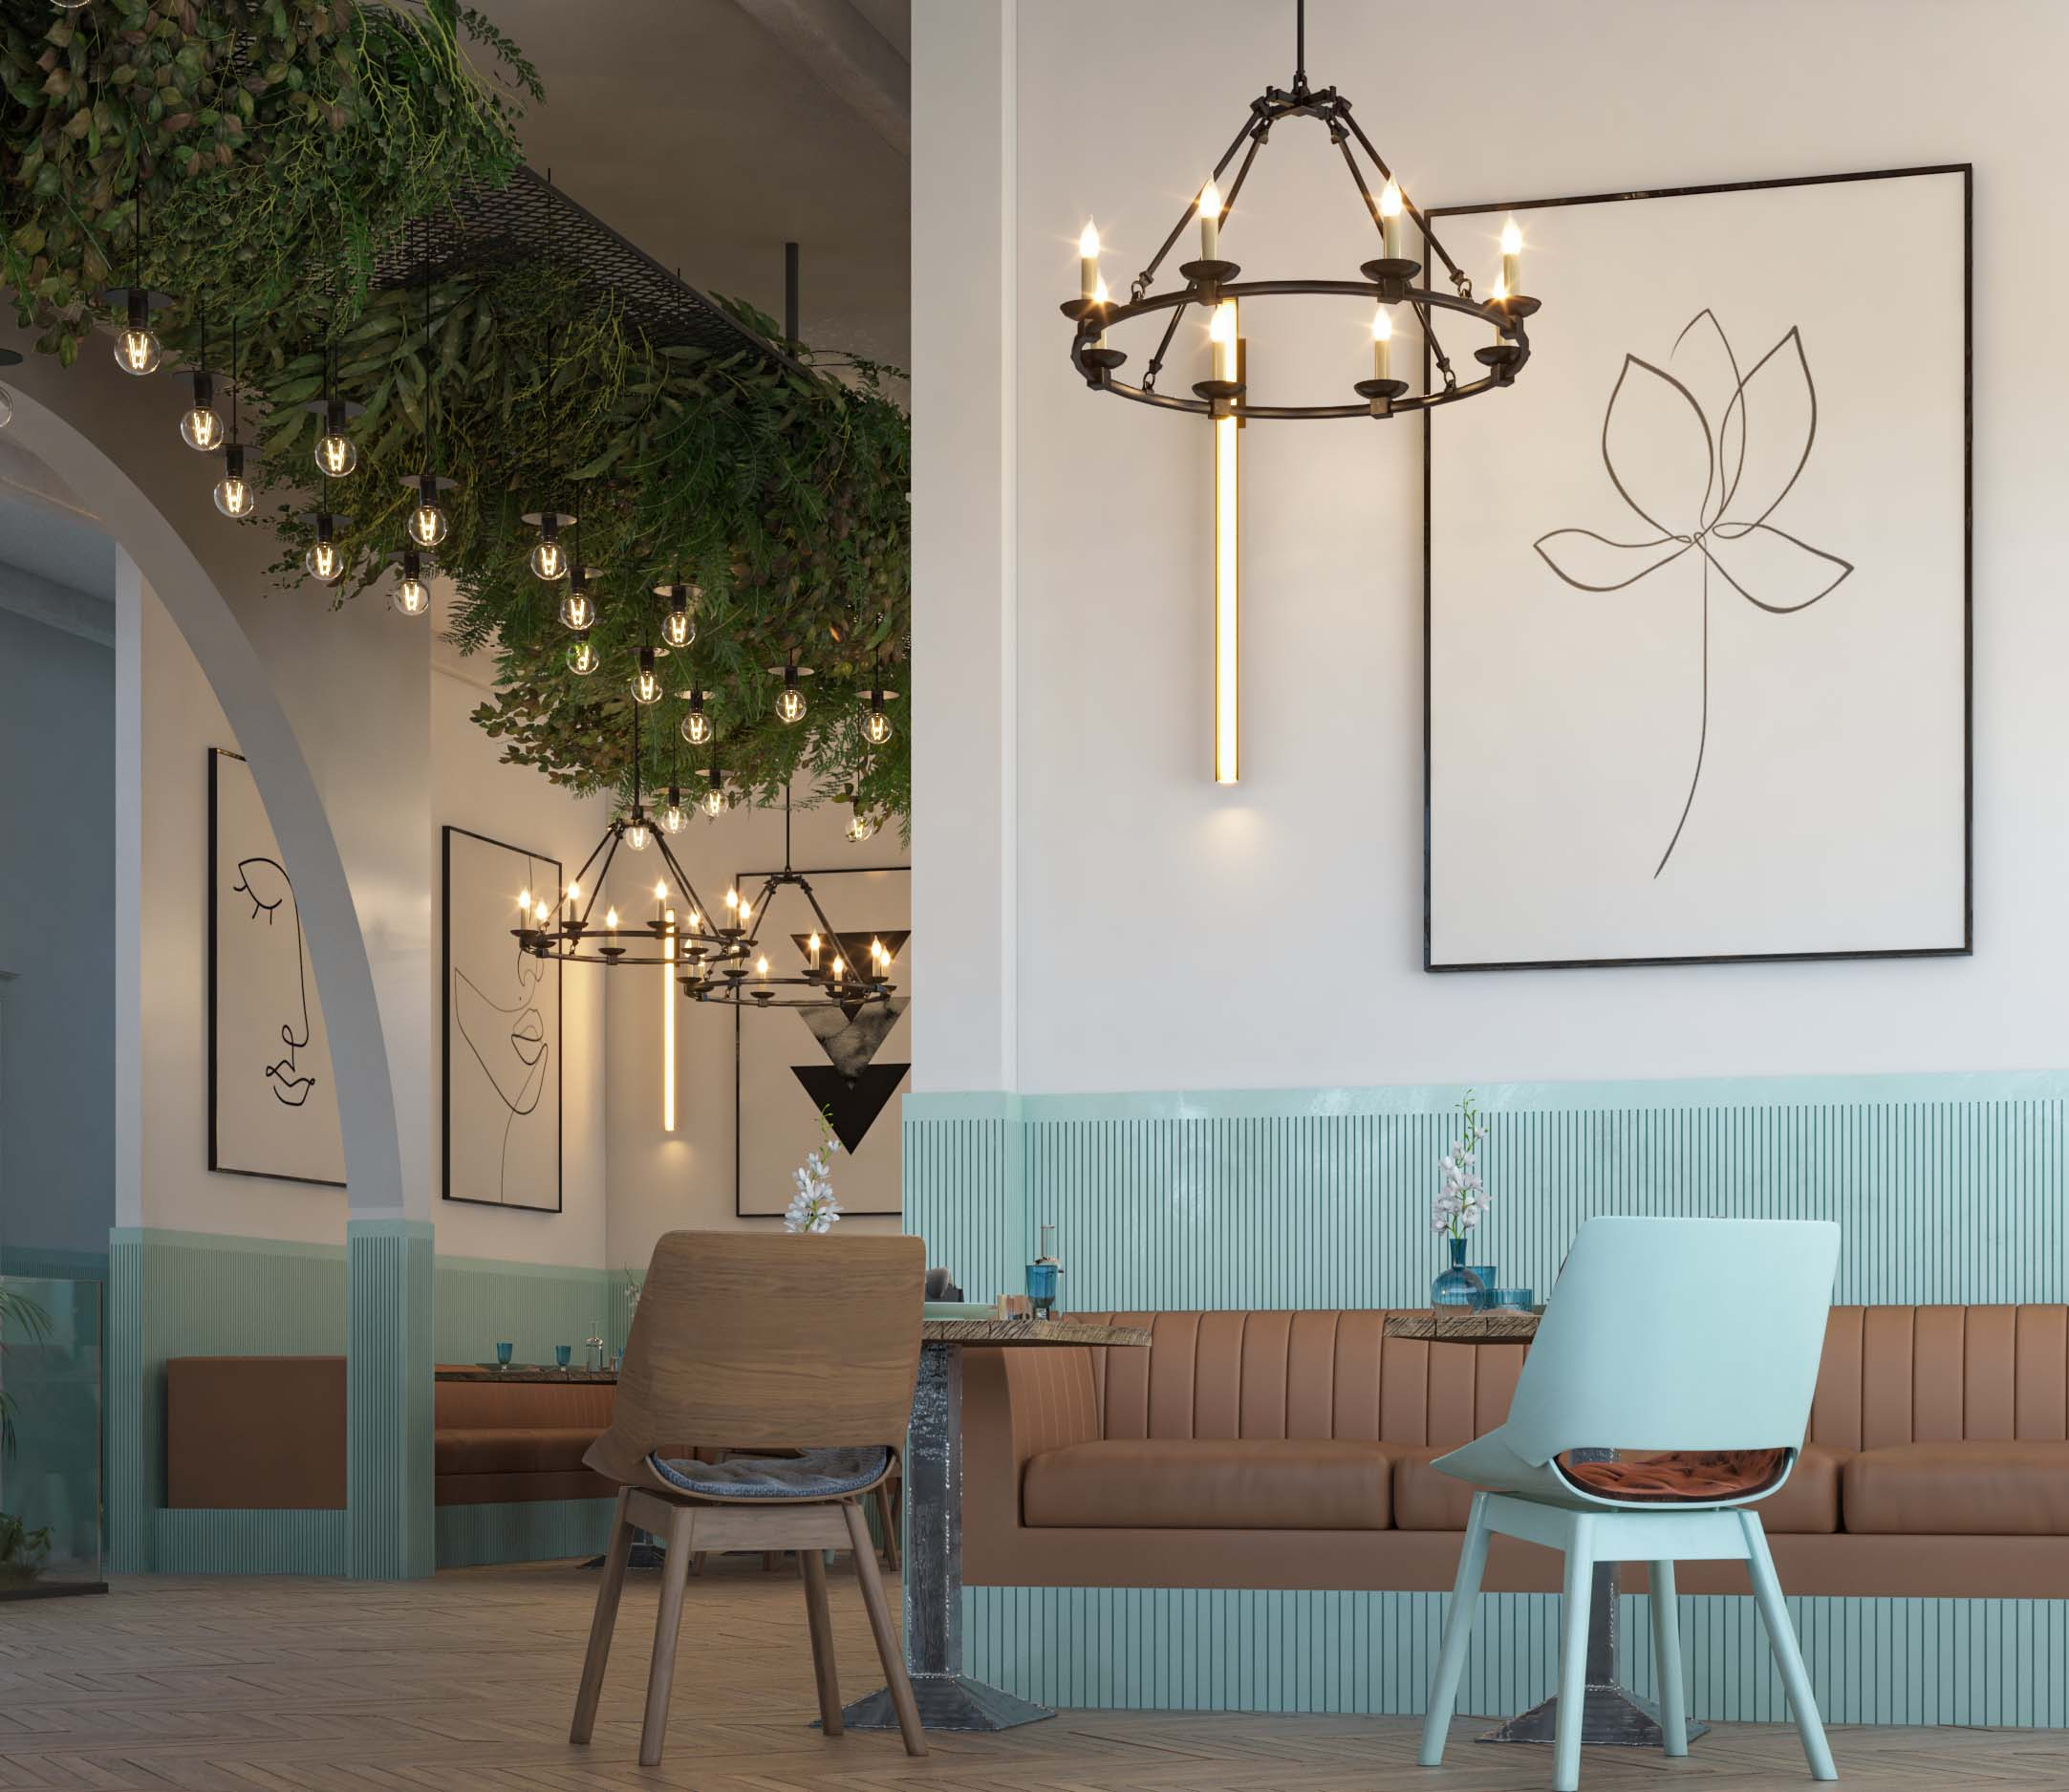 AMERICAN CAFE DESIGN -CAFE DESIGN BY HRarchZ - BROWN SOFA DESIGN -LIGHT - TURUQUOISE